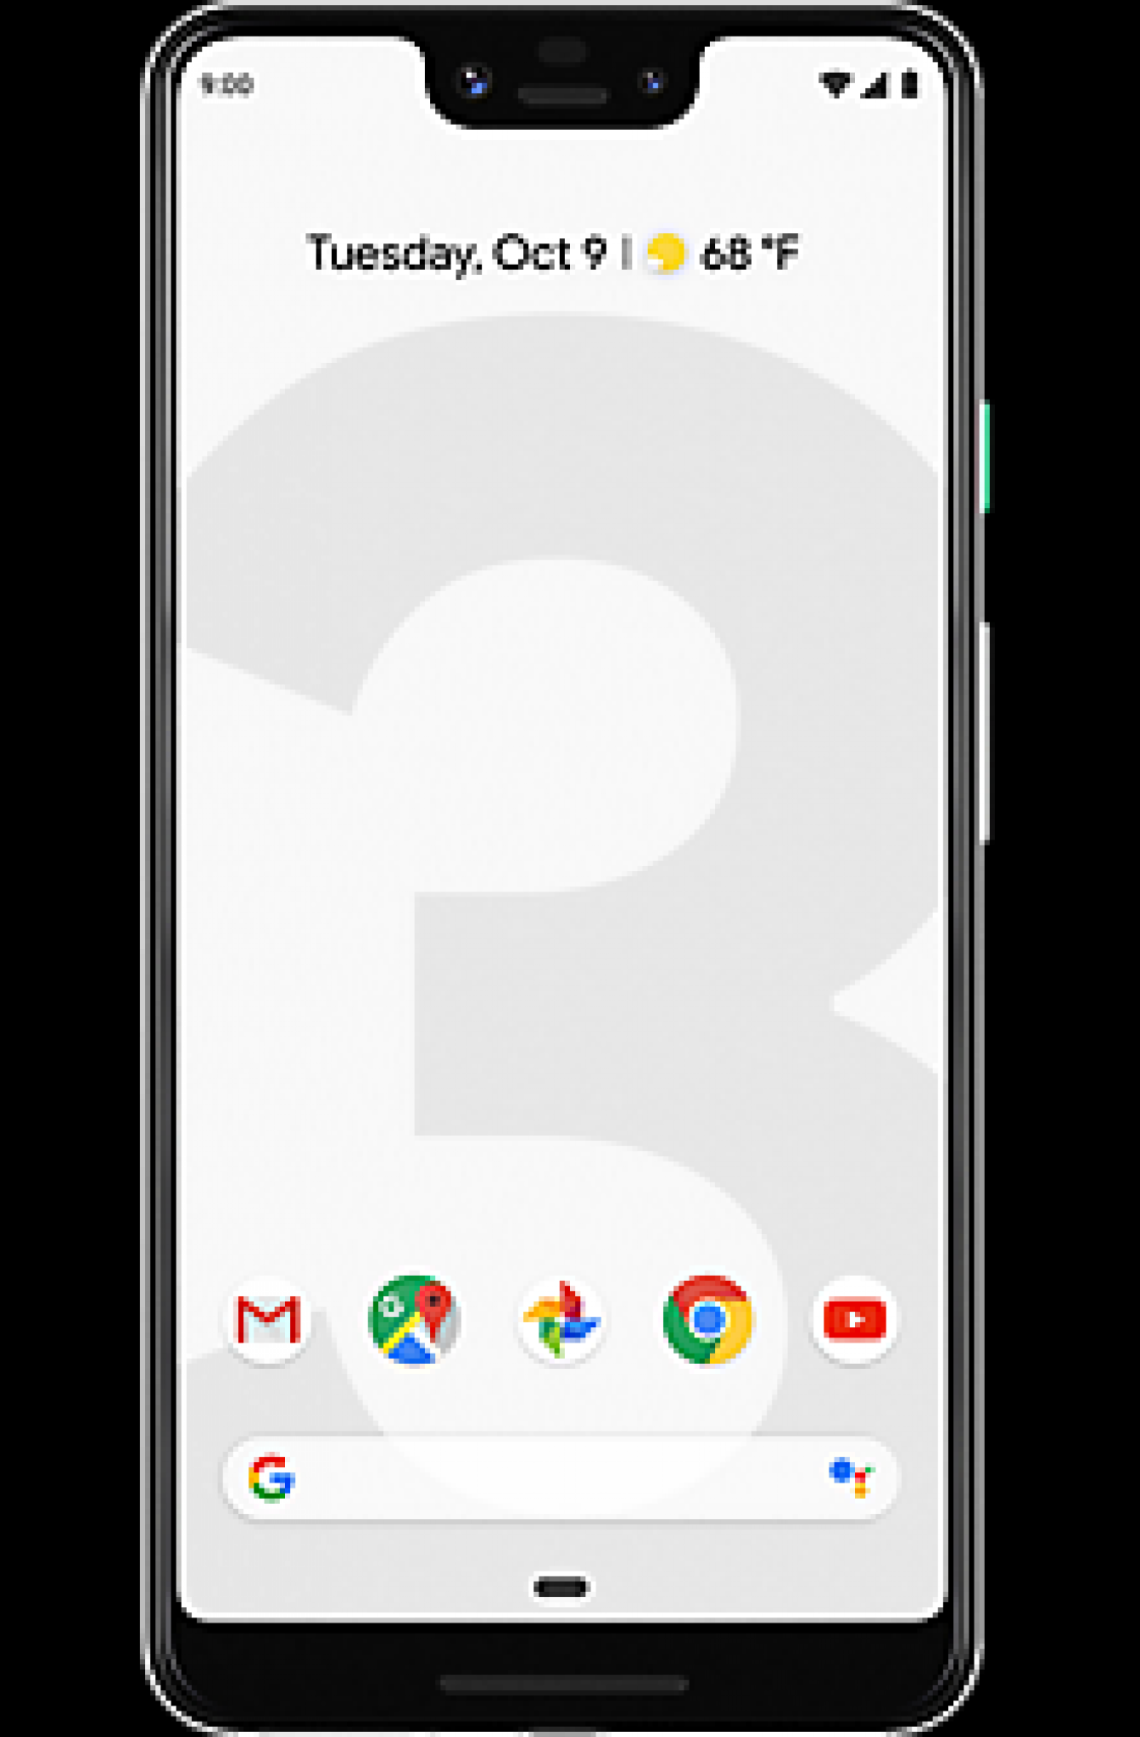 Pre-Order Pixel 3 XL Available on Oct 18th | Verizon Wireless